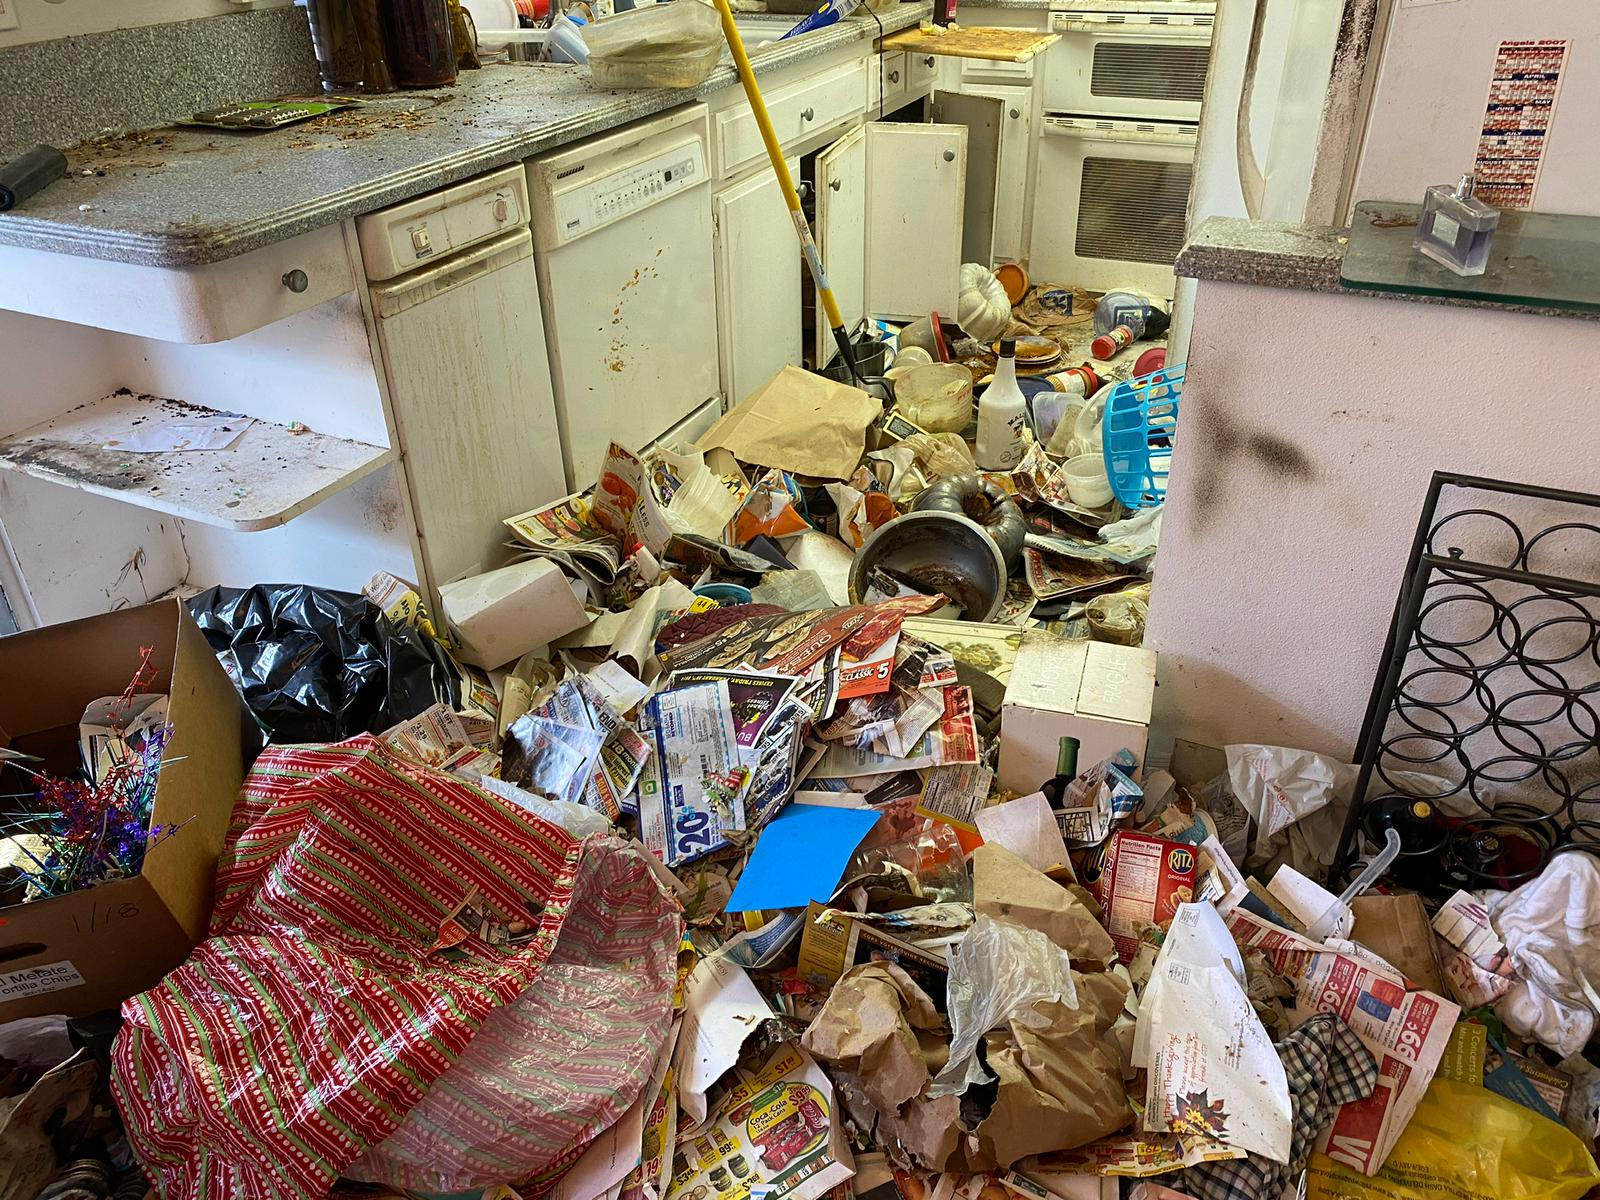 Extreme Cleaning - Decluttering, Organizing your Home and Getting your life back!